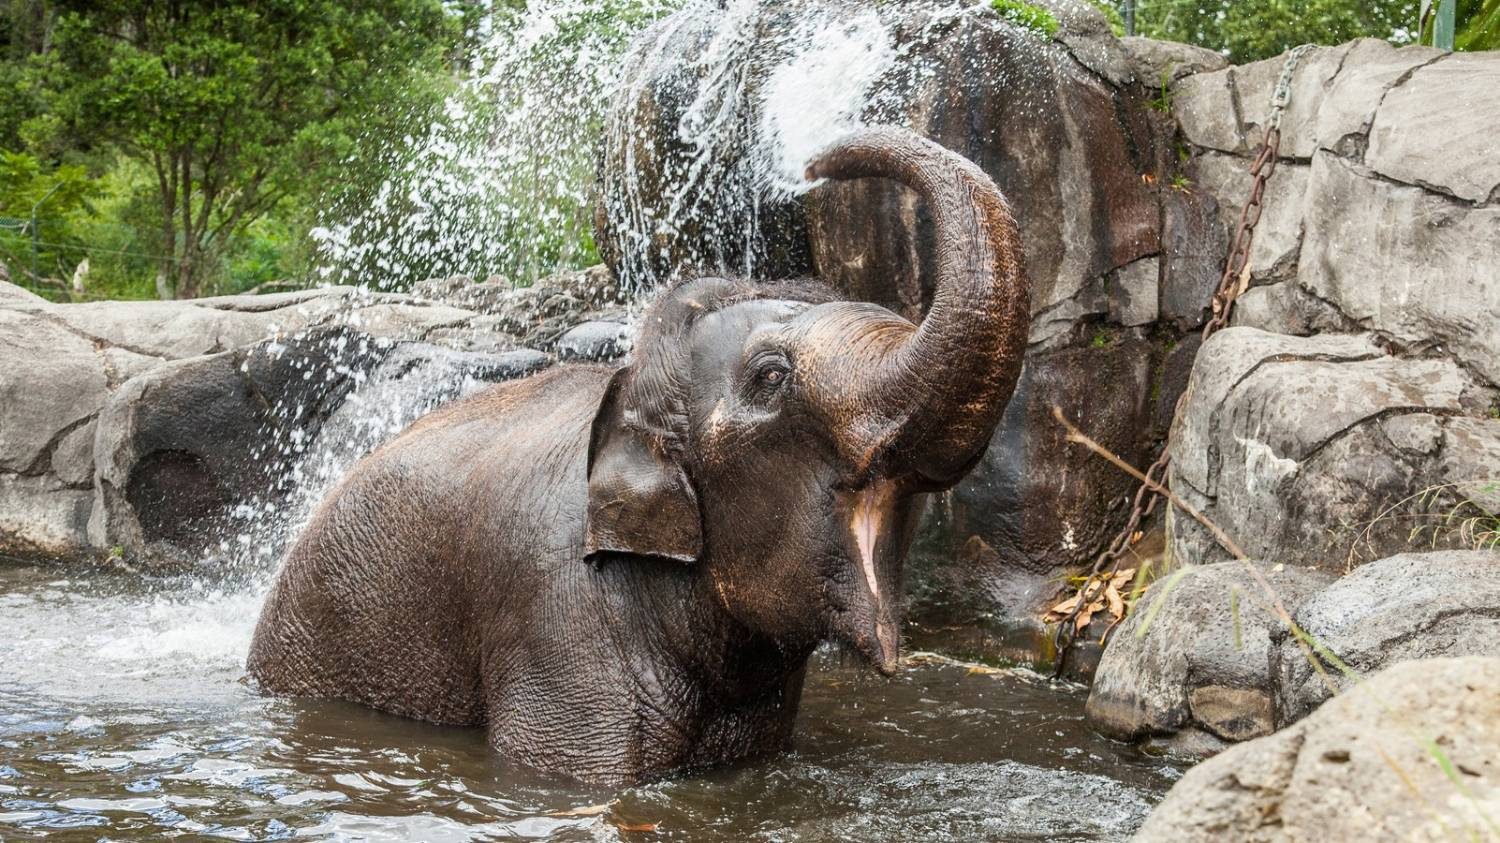 Auckland Zoo - Things To Do In Auckland